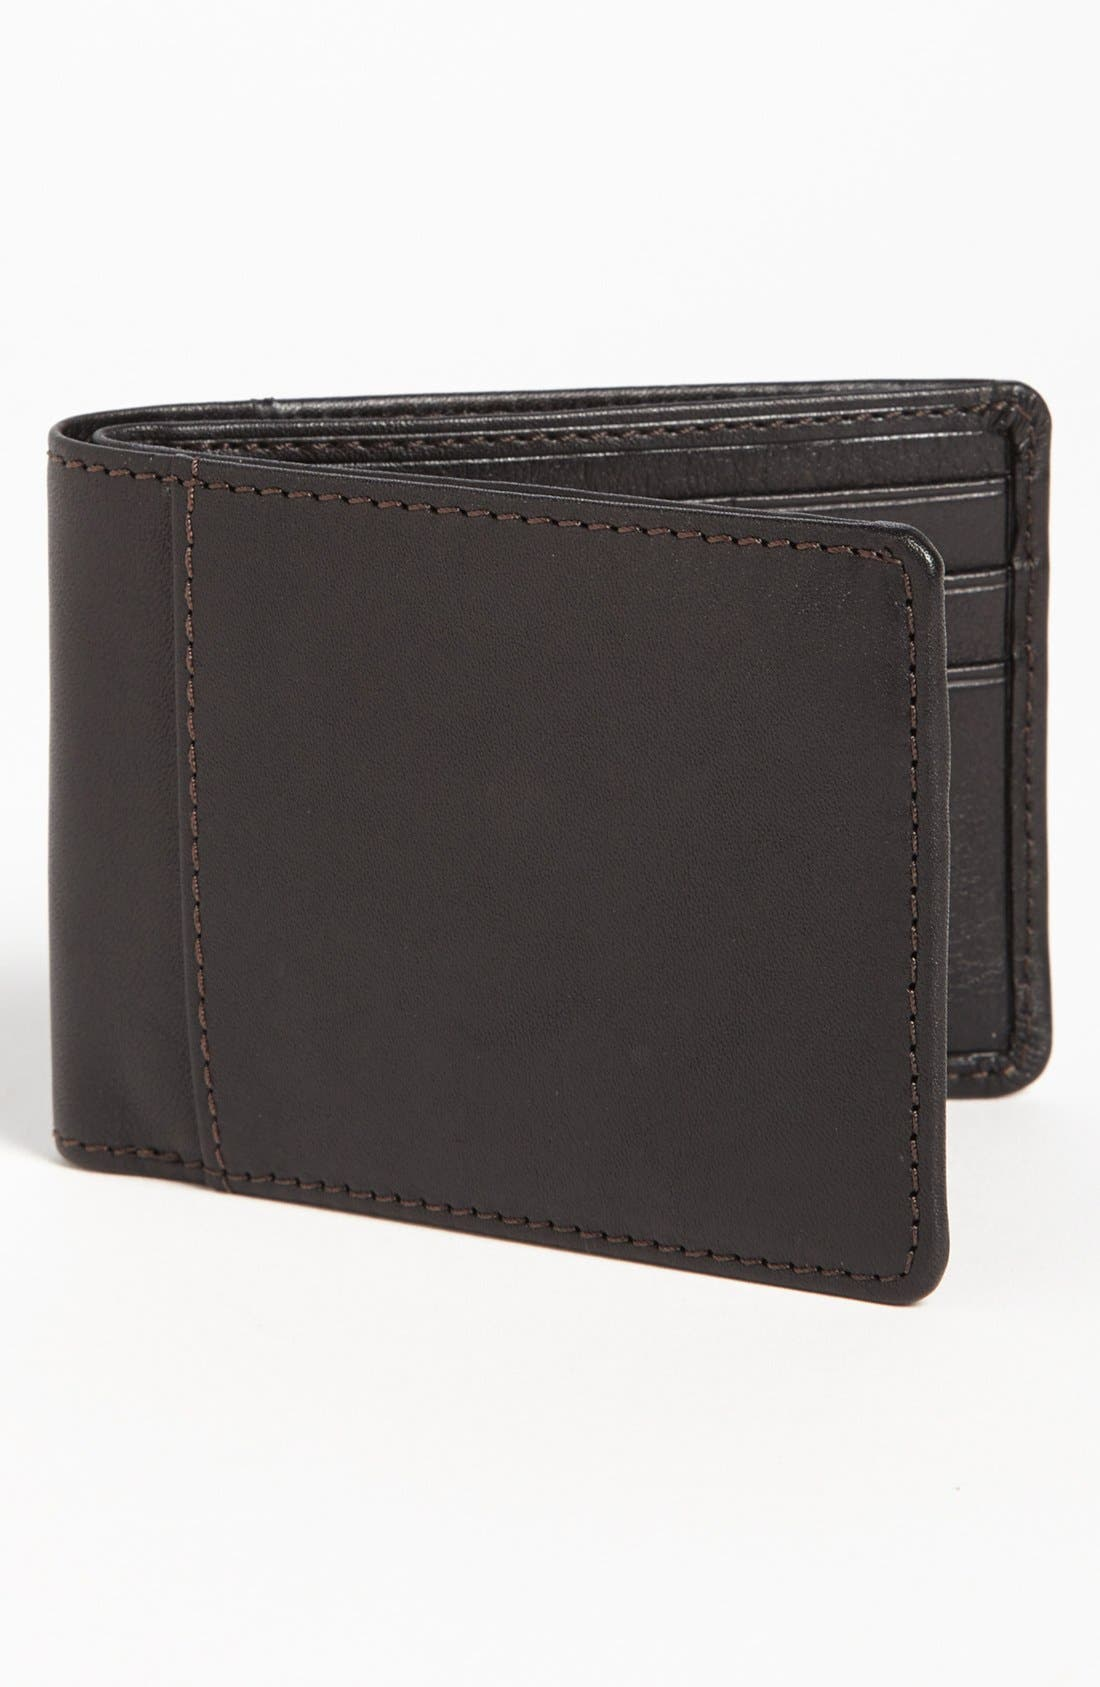 Main Image - Bosca Leather Wallet